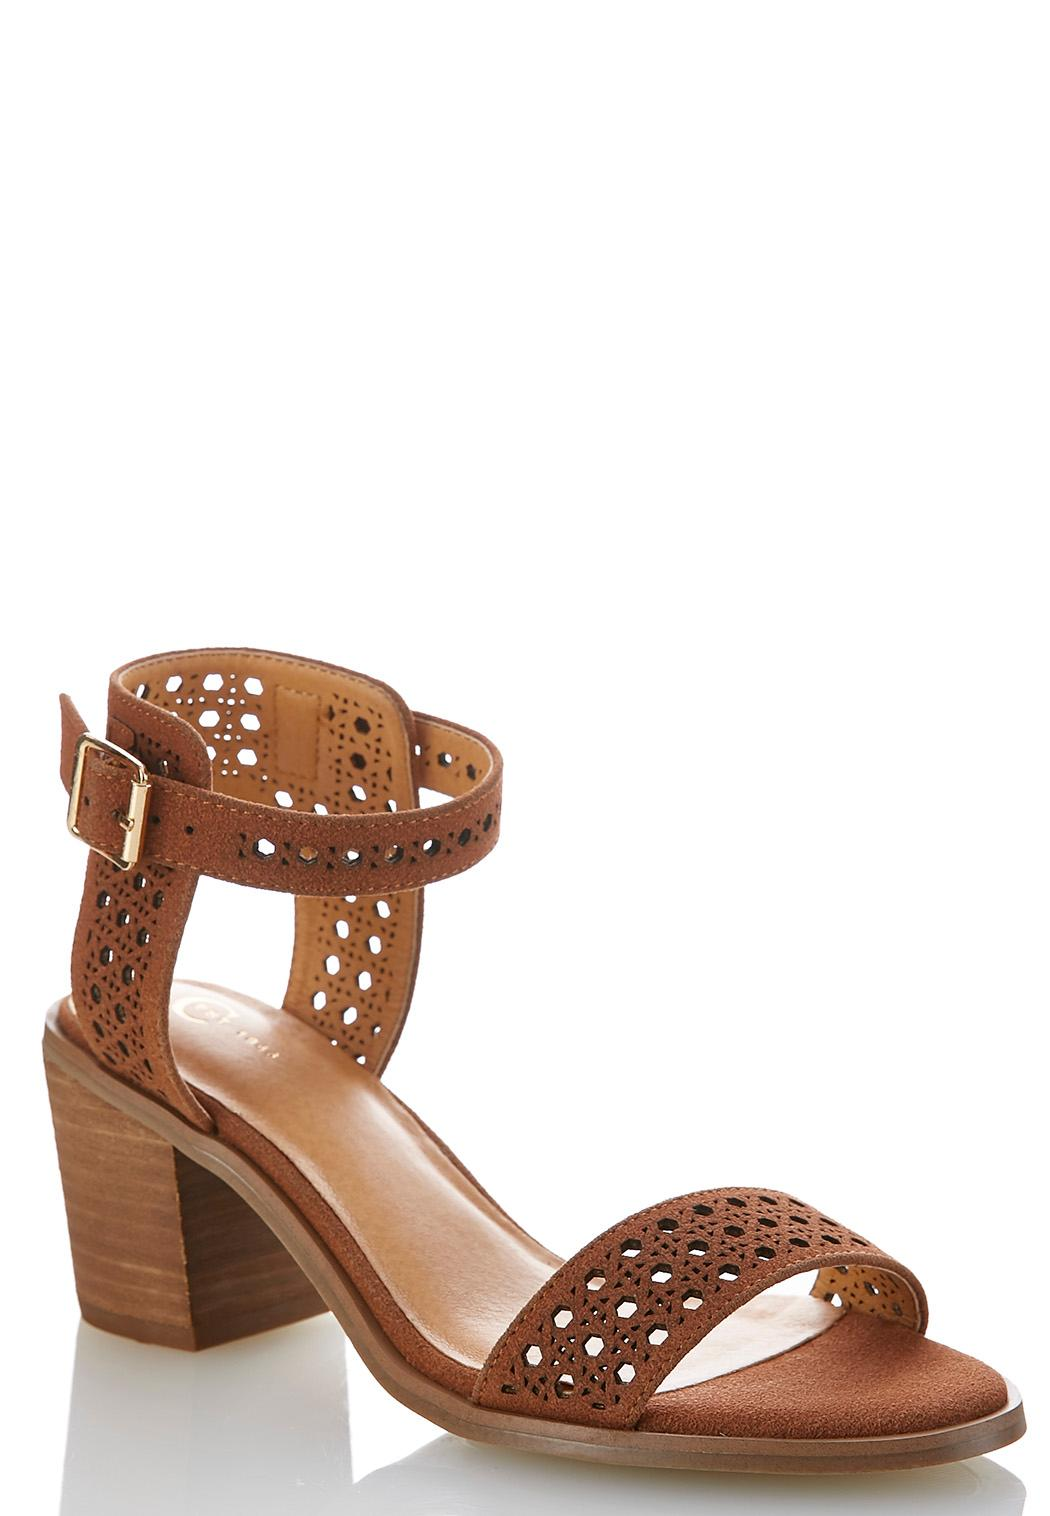 Woven Chunky Heeled Sandals Heels Cato Fashions - What is commercial invoice shoe stores online